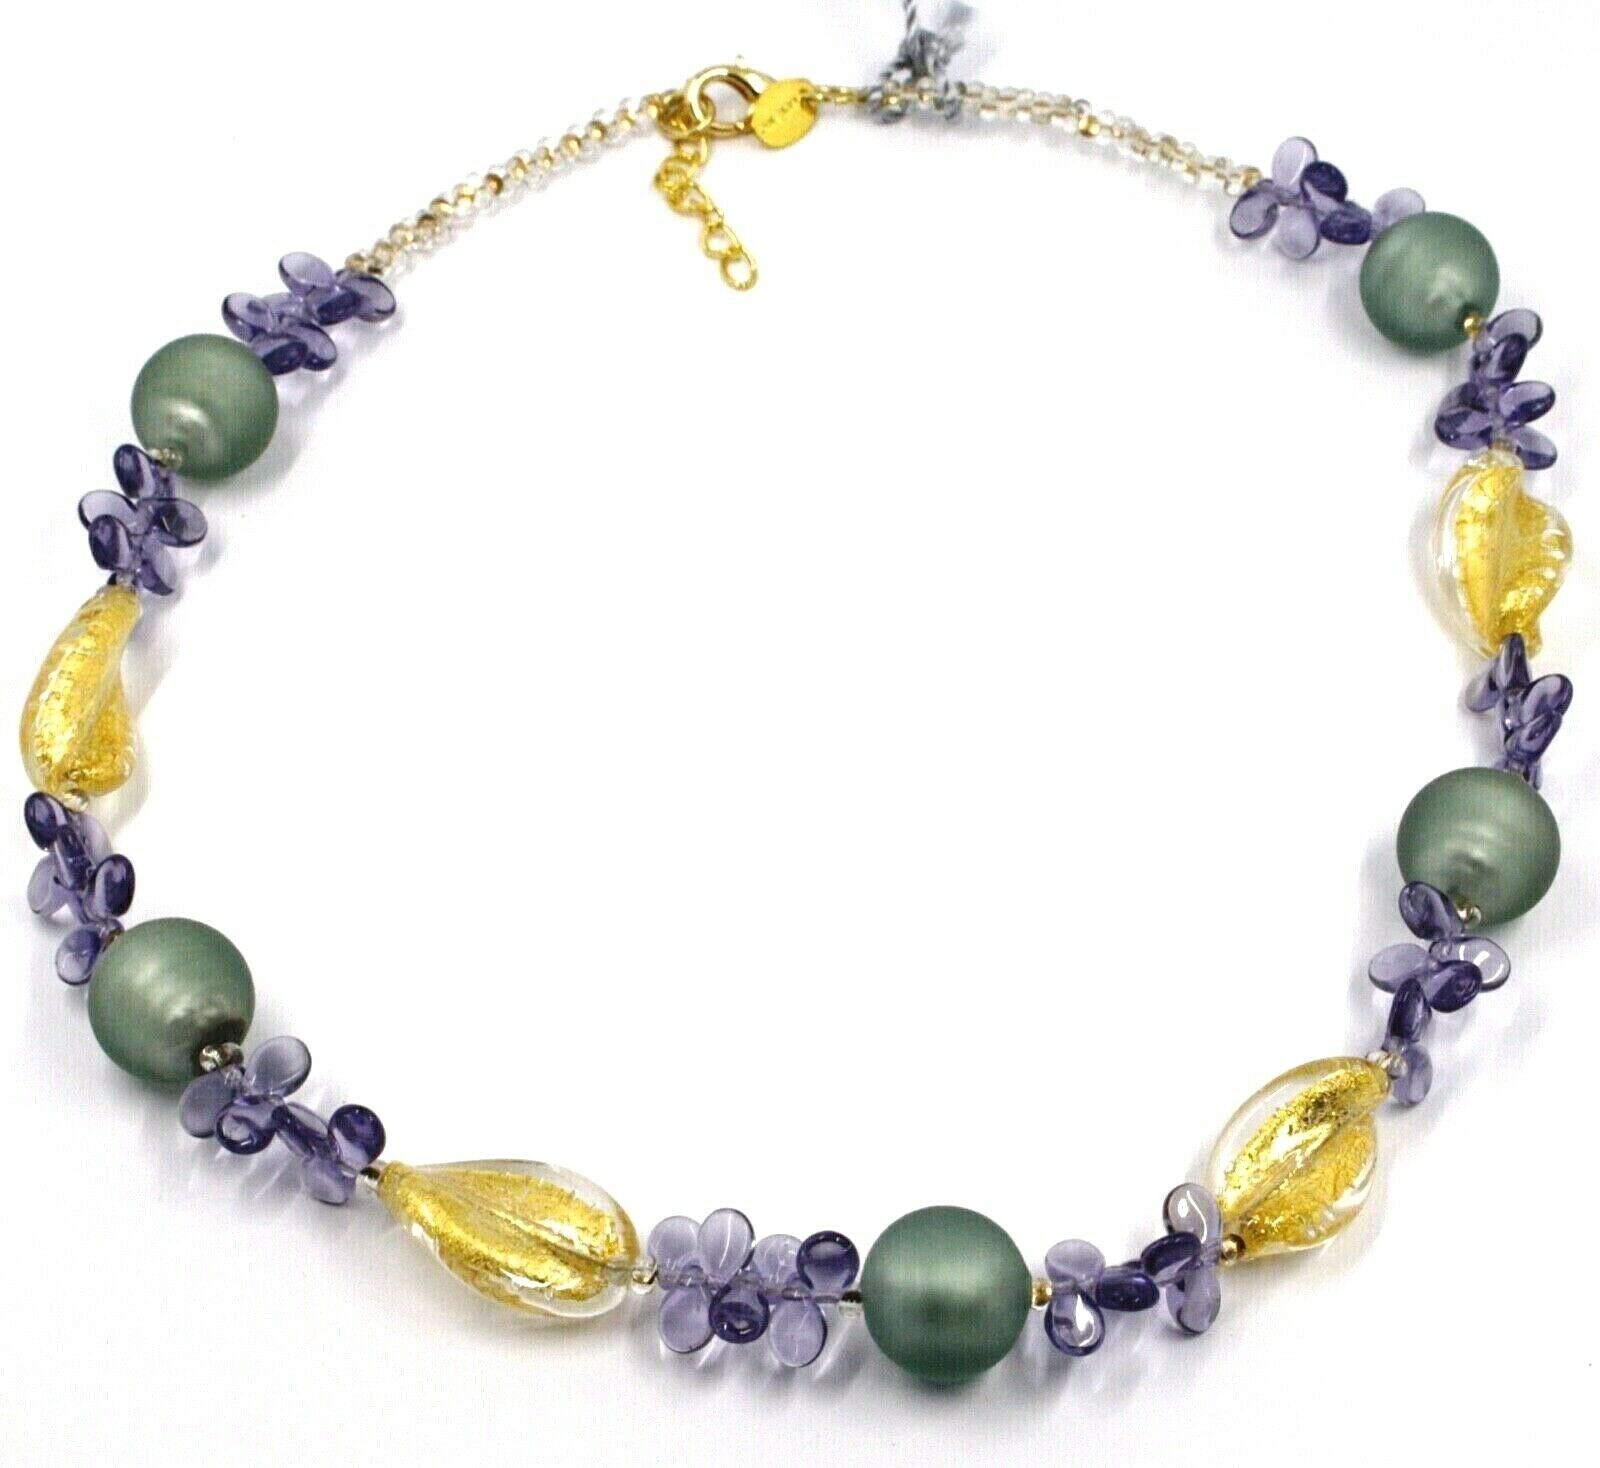 NECKLACE PETALS DROPS, SATIN SPHERE SPIRAL WAVE PURPLE YELLOW MURANO GLASS ITALY